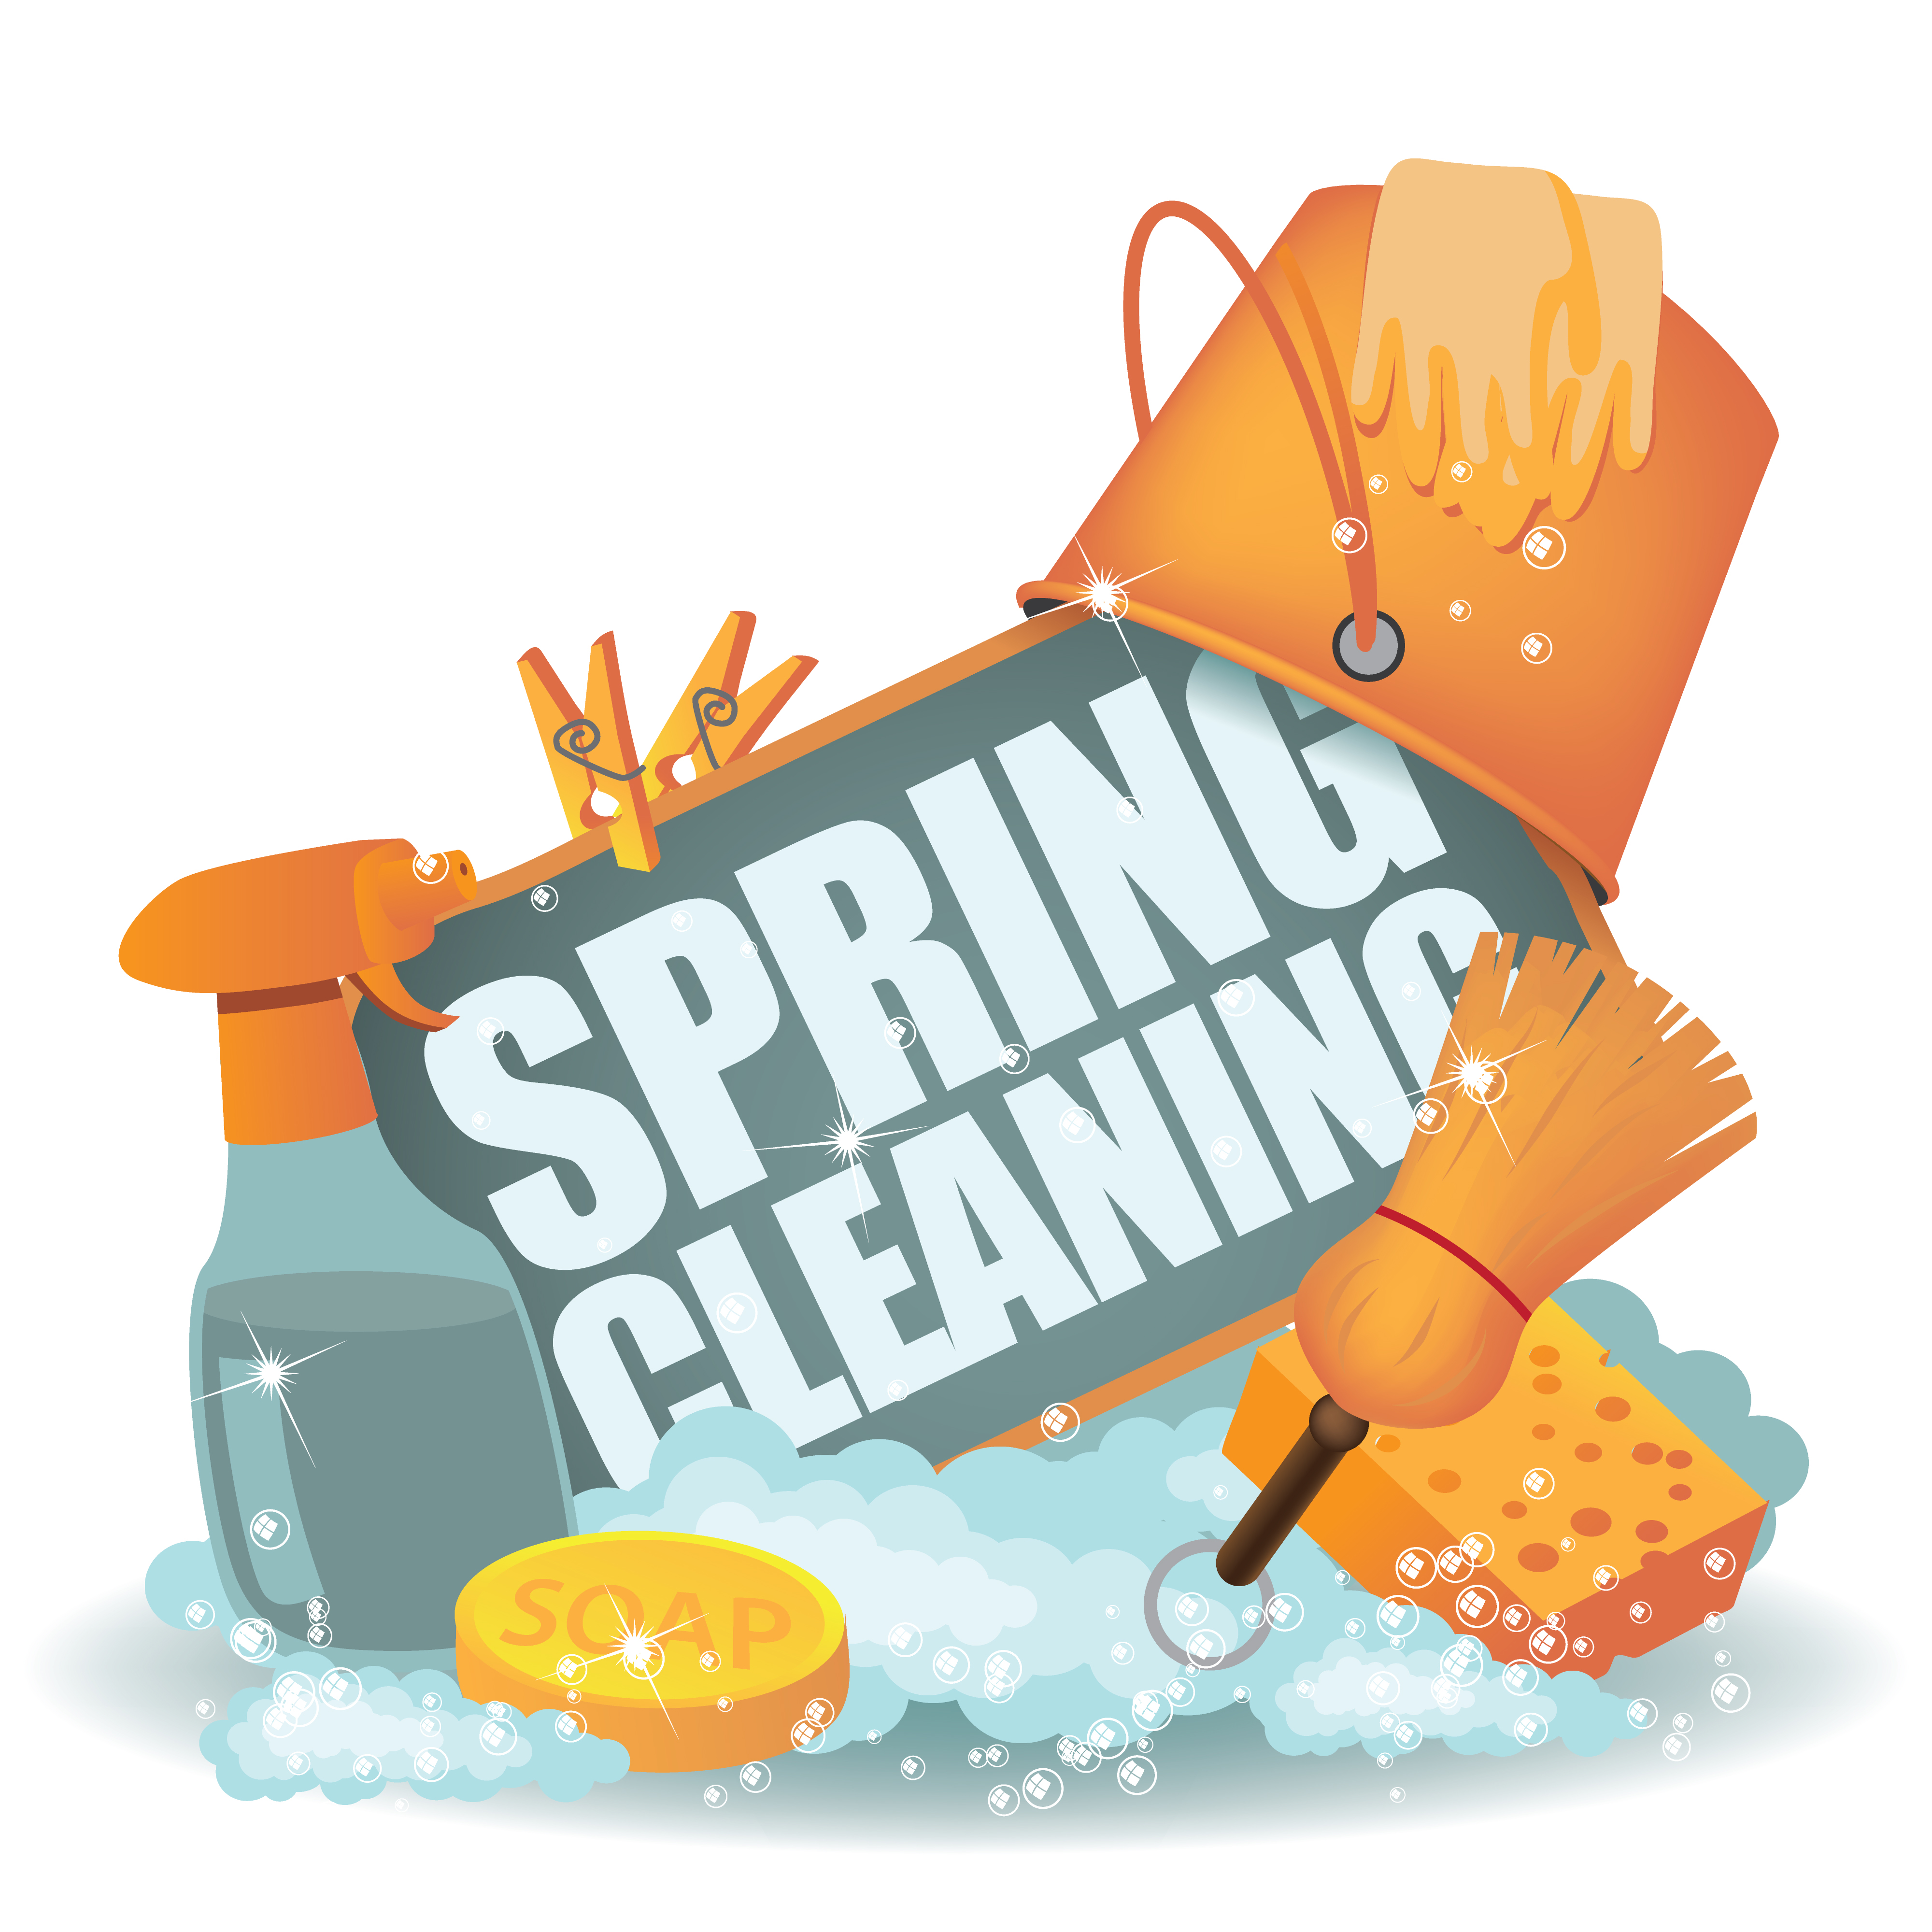 Spring cleaning clipart.